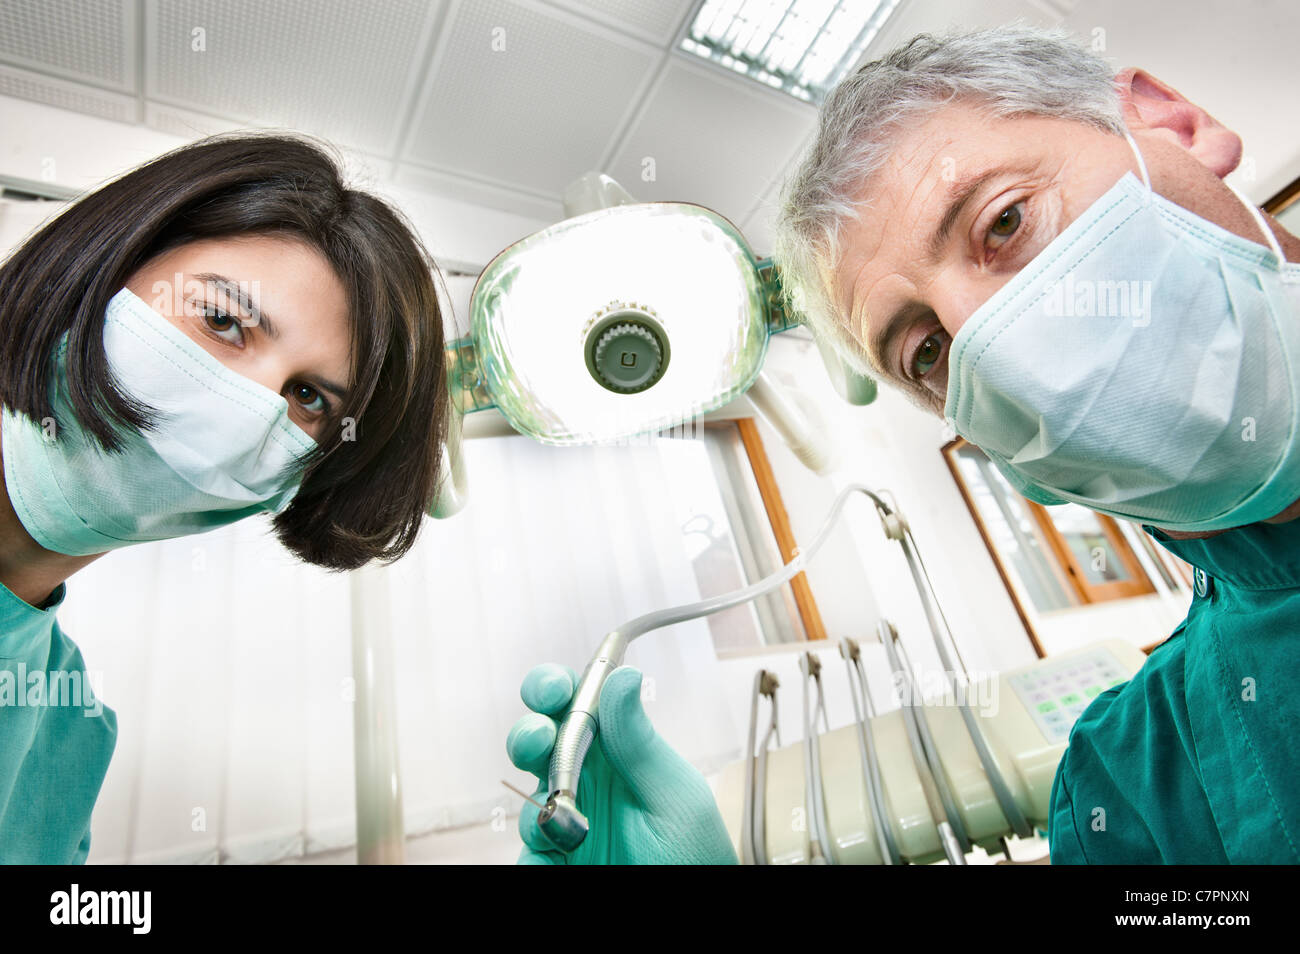 Dentist and assistant working in office - Stock Image